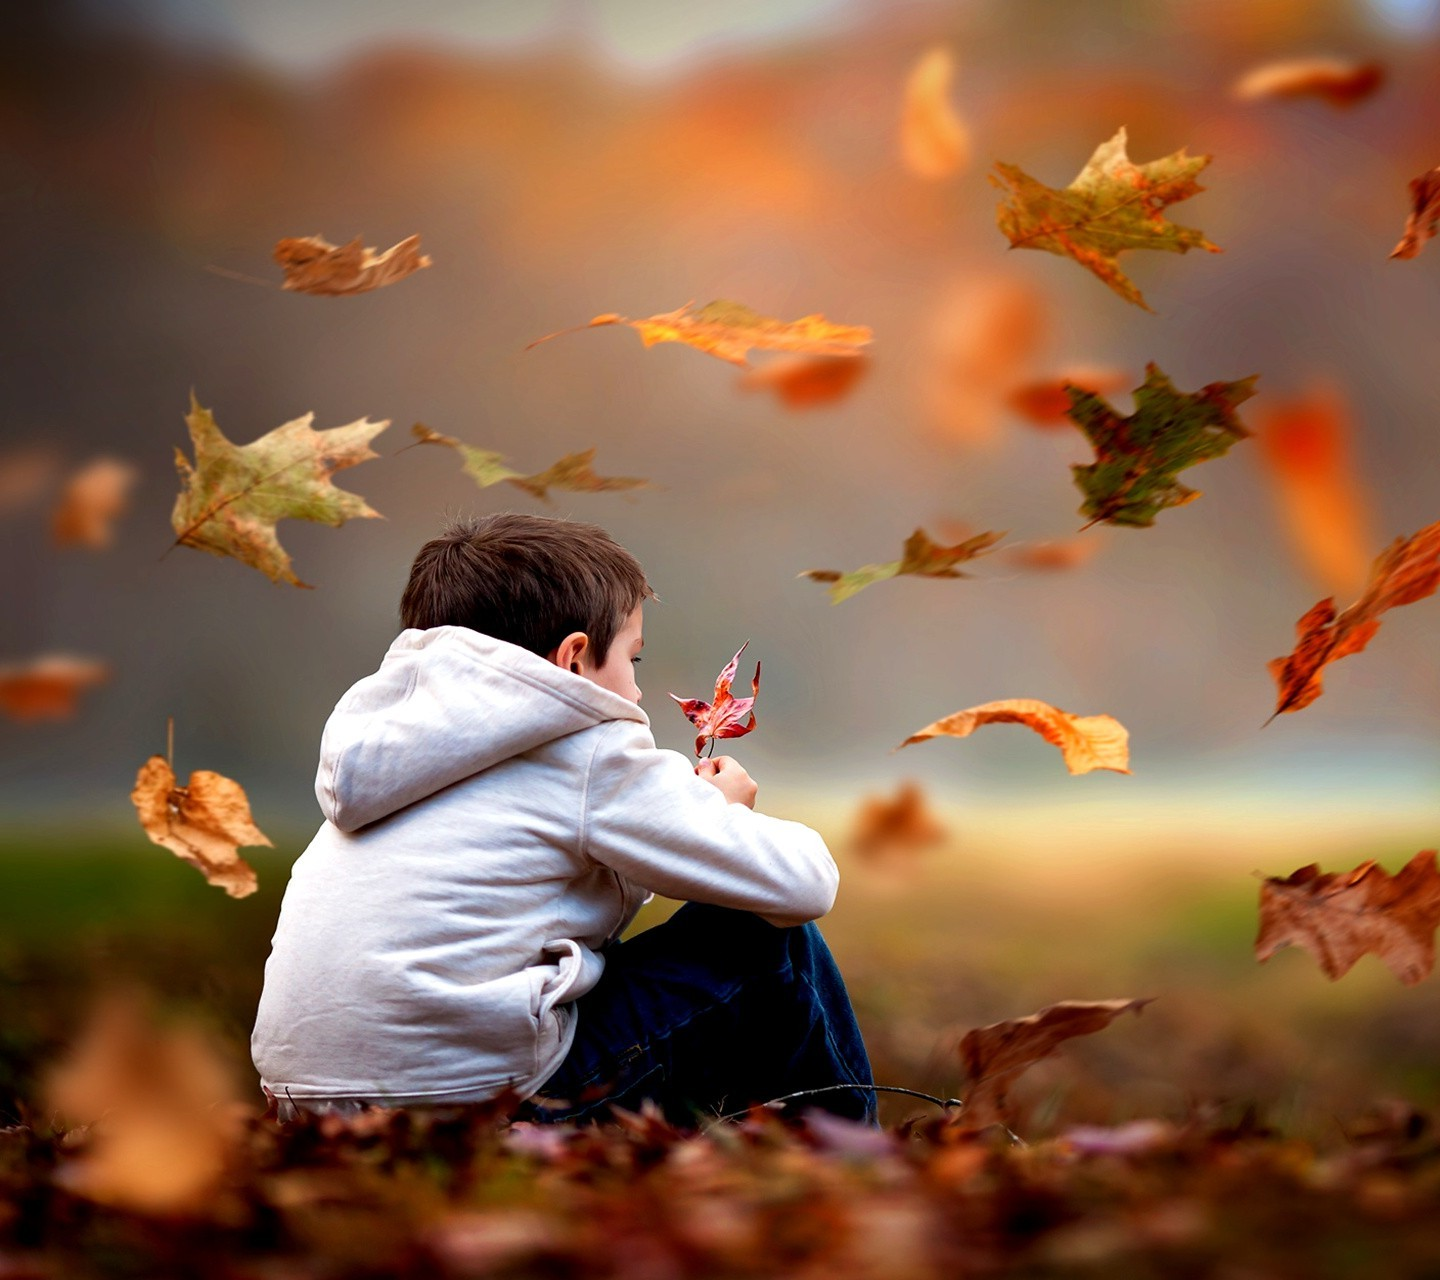 Sad Boy And Girl Wallpaper Full Hd Nature Leaves Children Wallpapers Hd Desktop And